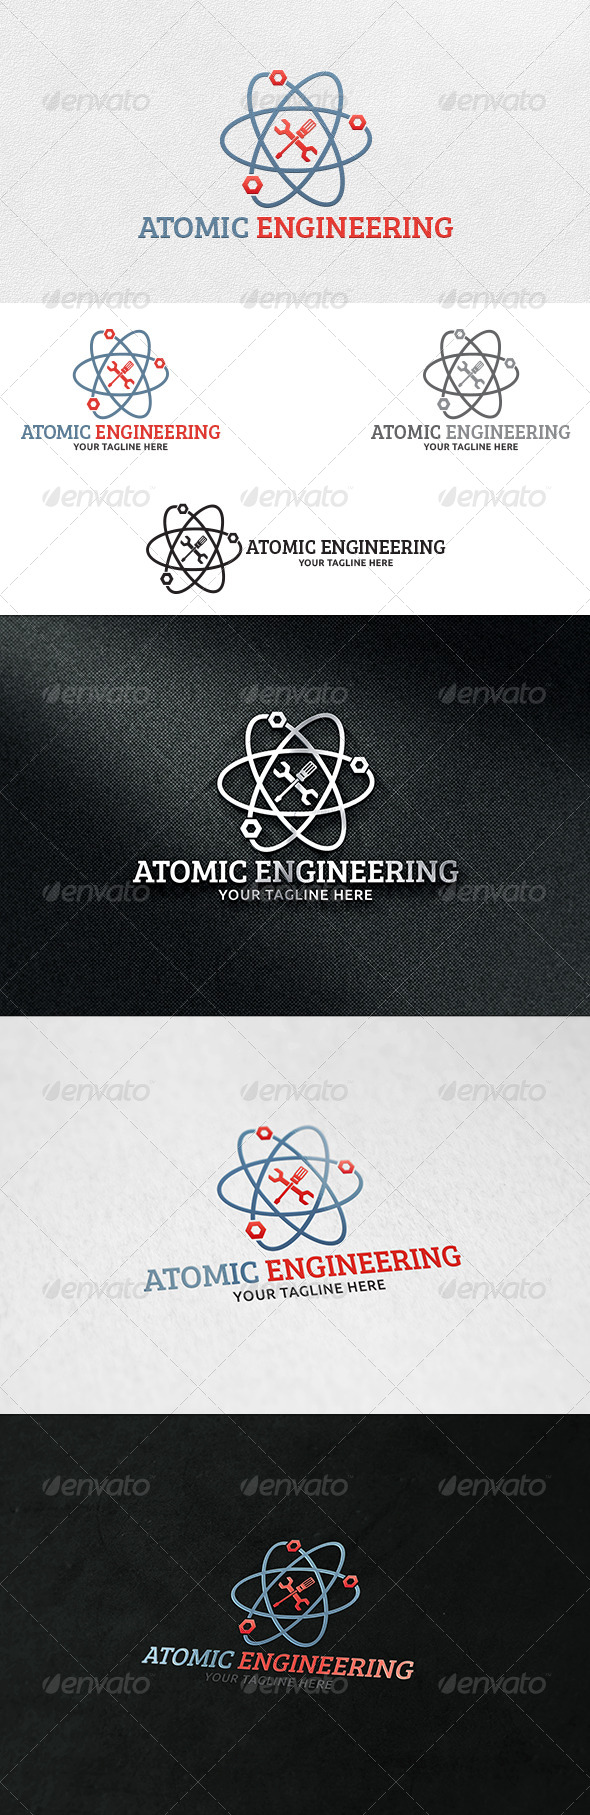 GraphicRiver Atomic Engineering Logo Template 6991875